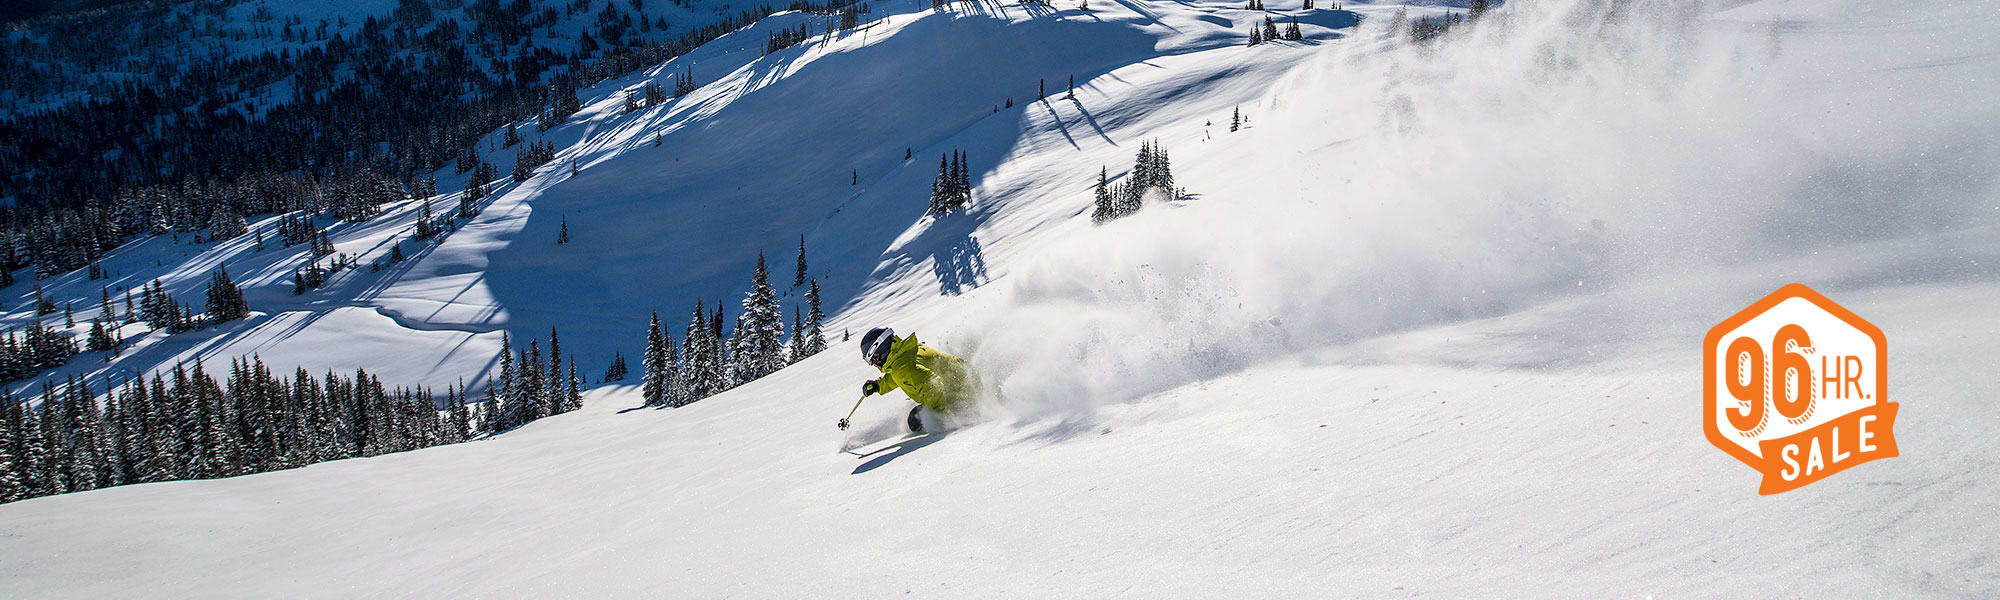 Whistler Blackcomb - 96 Hour Sale